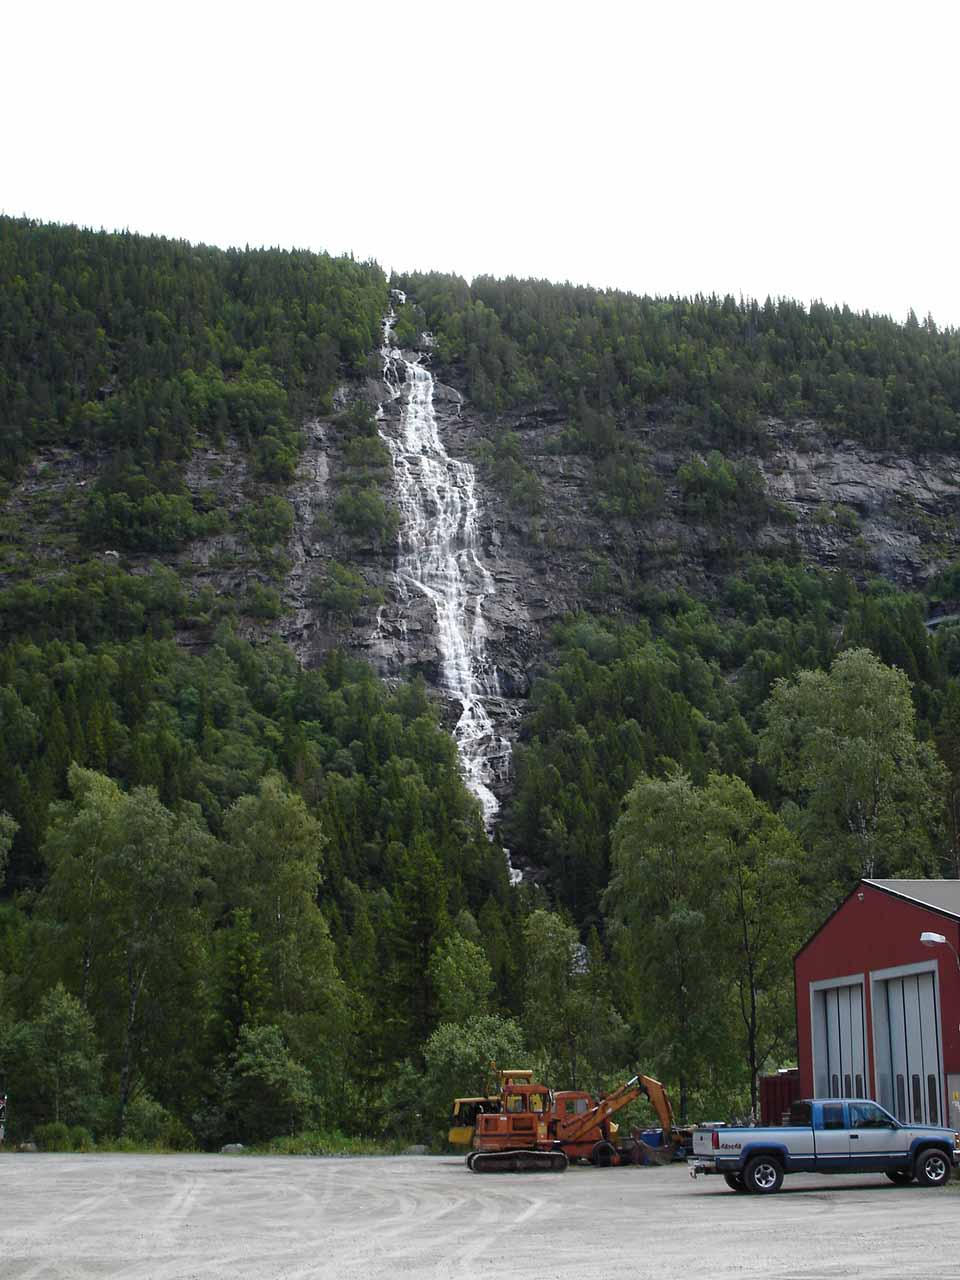 Looking directly at the waterfall about 7km east of Rjukan